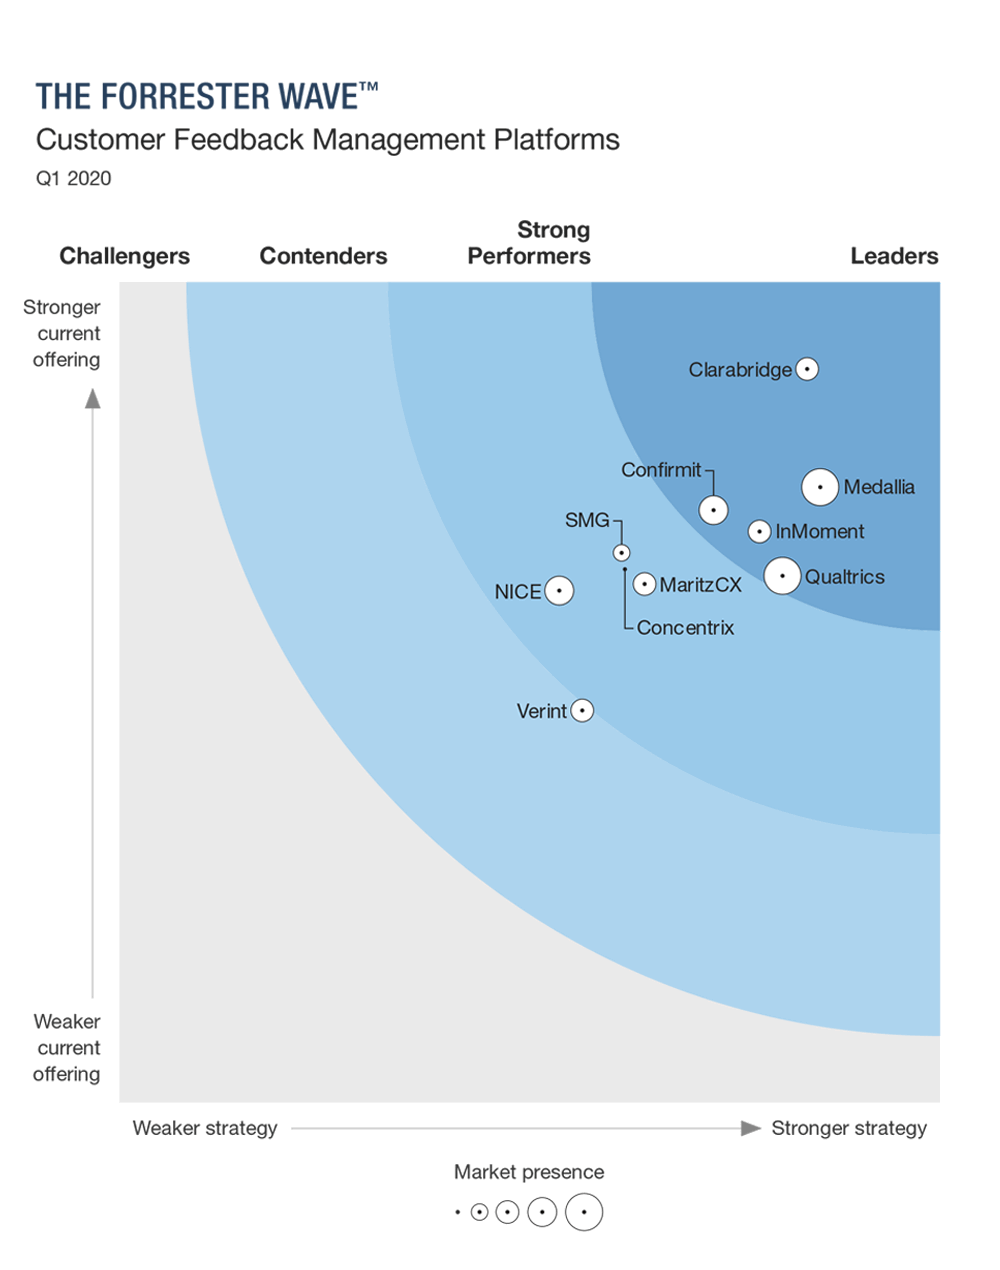 Confirmit named a leader among Customer Feedback Management Platforms